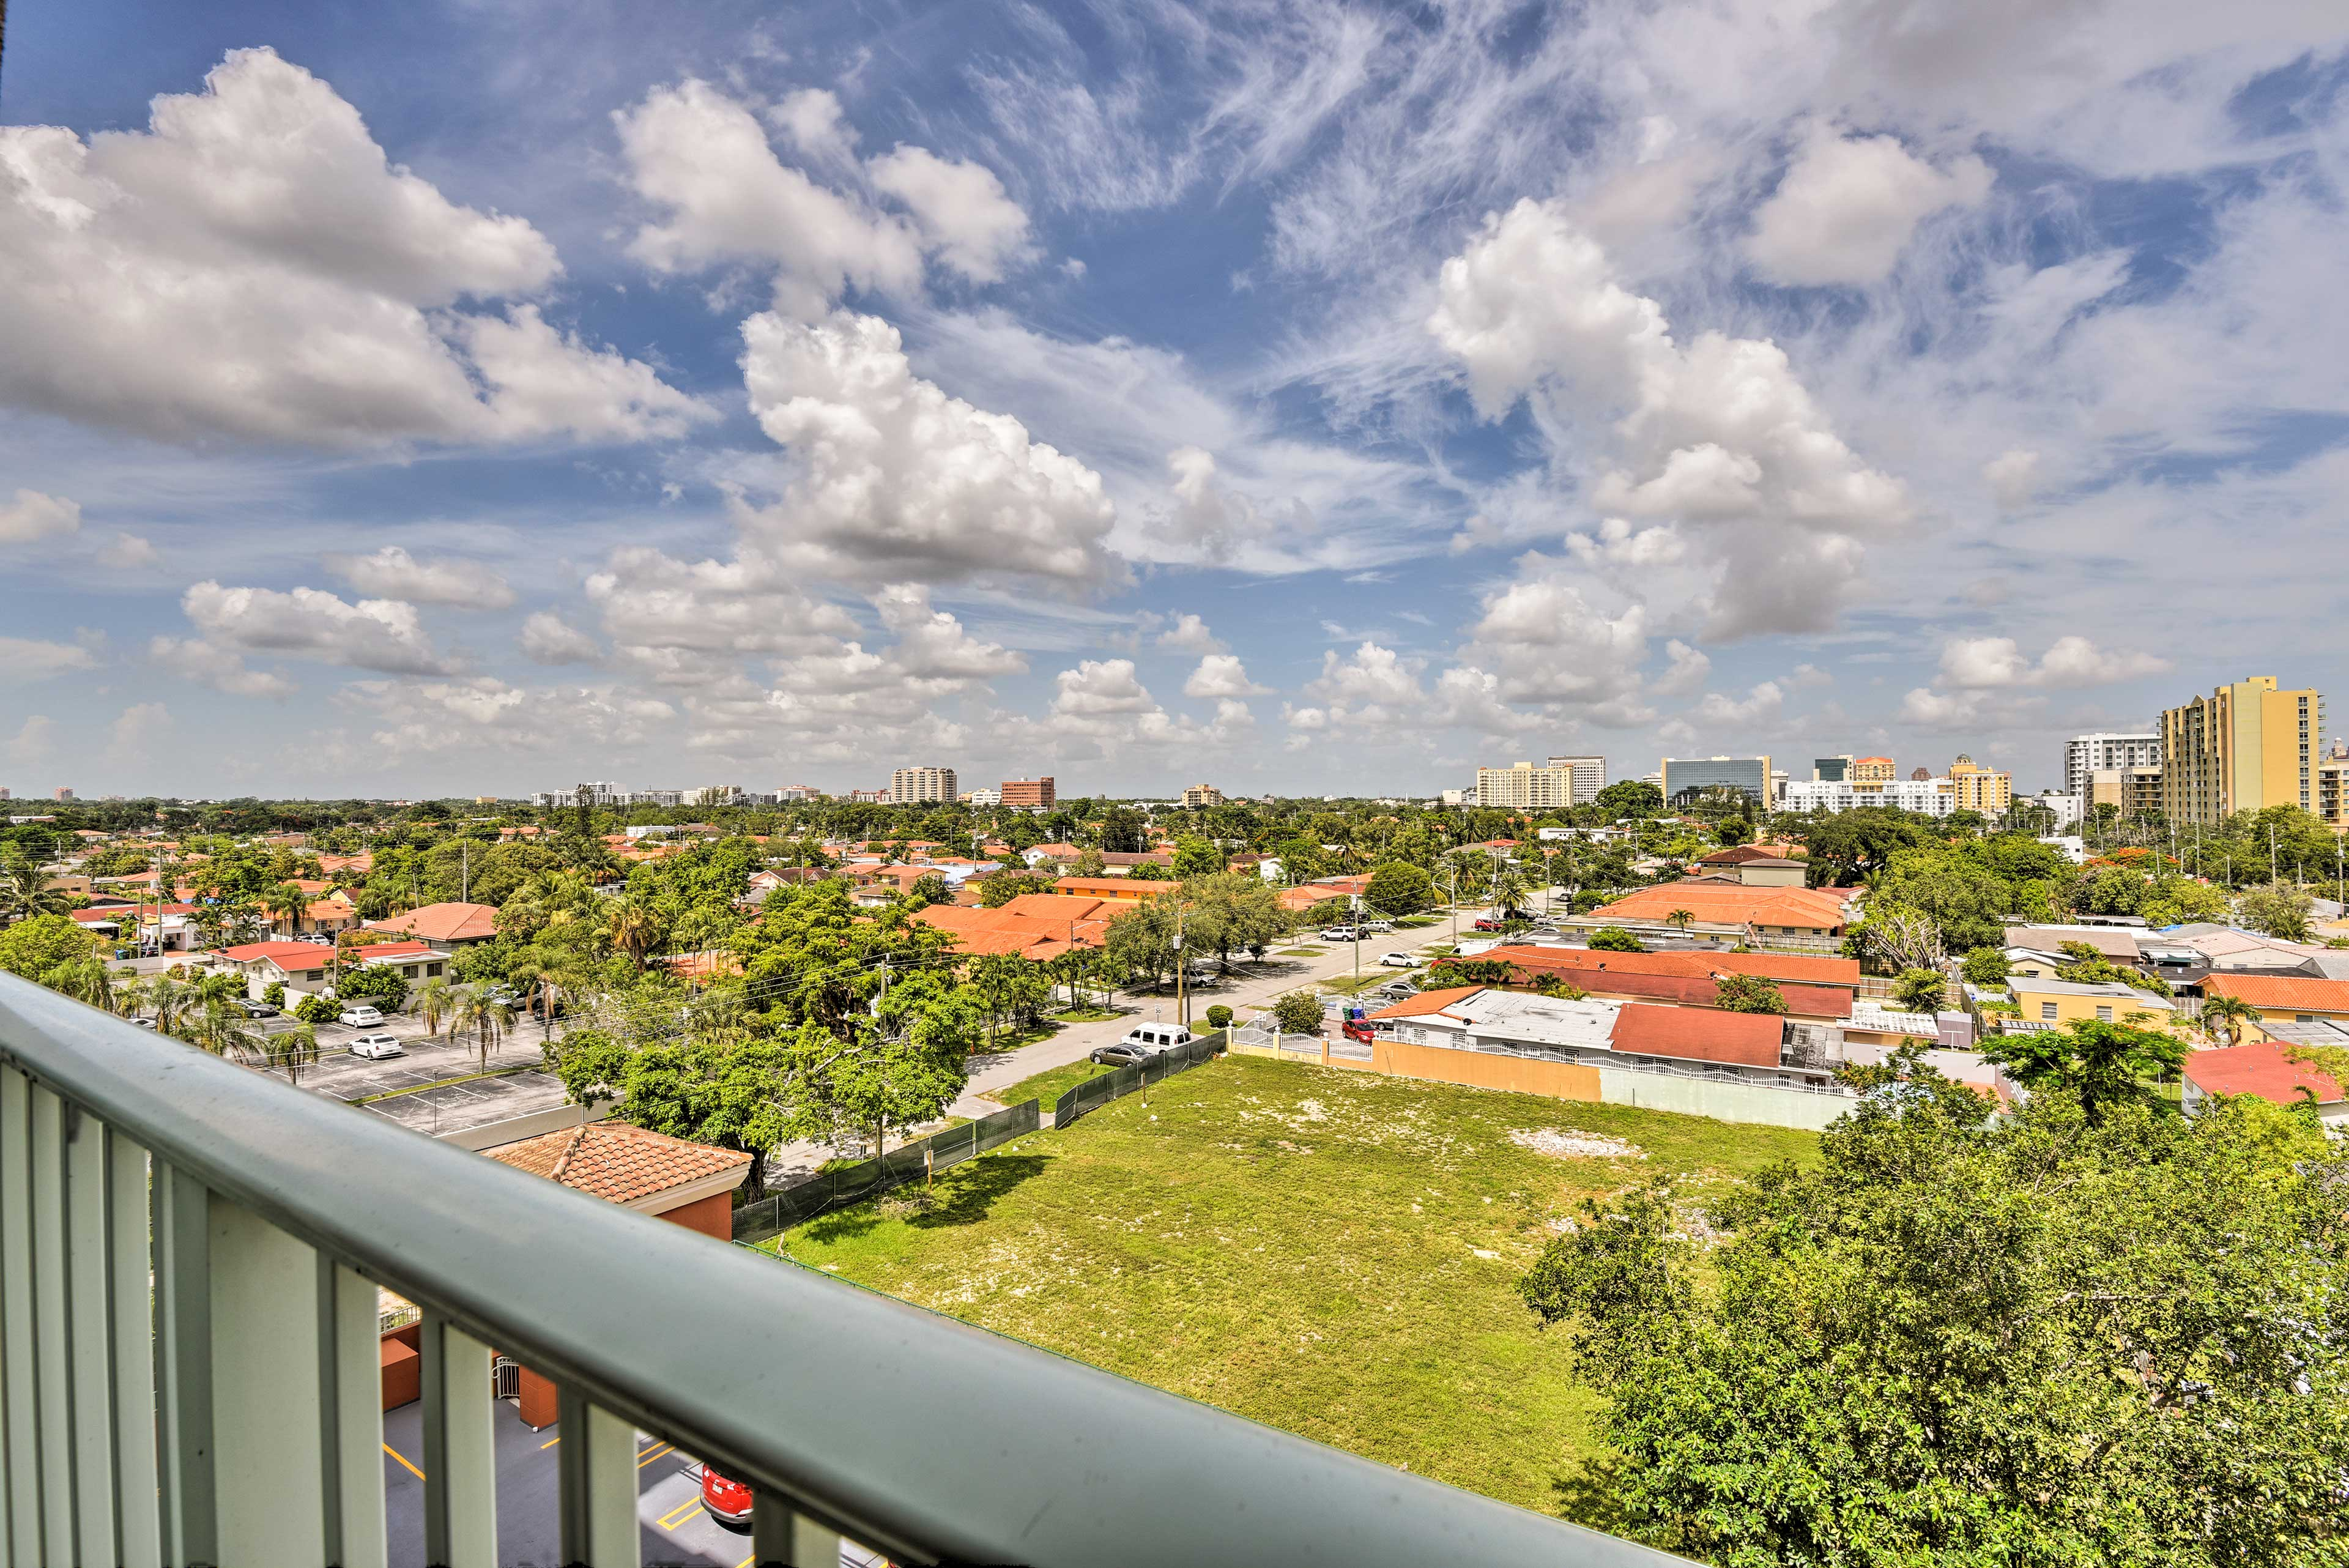 This 1-bedroom, 1-bath unit sleeps 4 and boasts scenic views of Coral Gables.